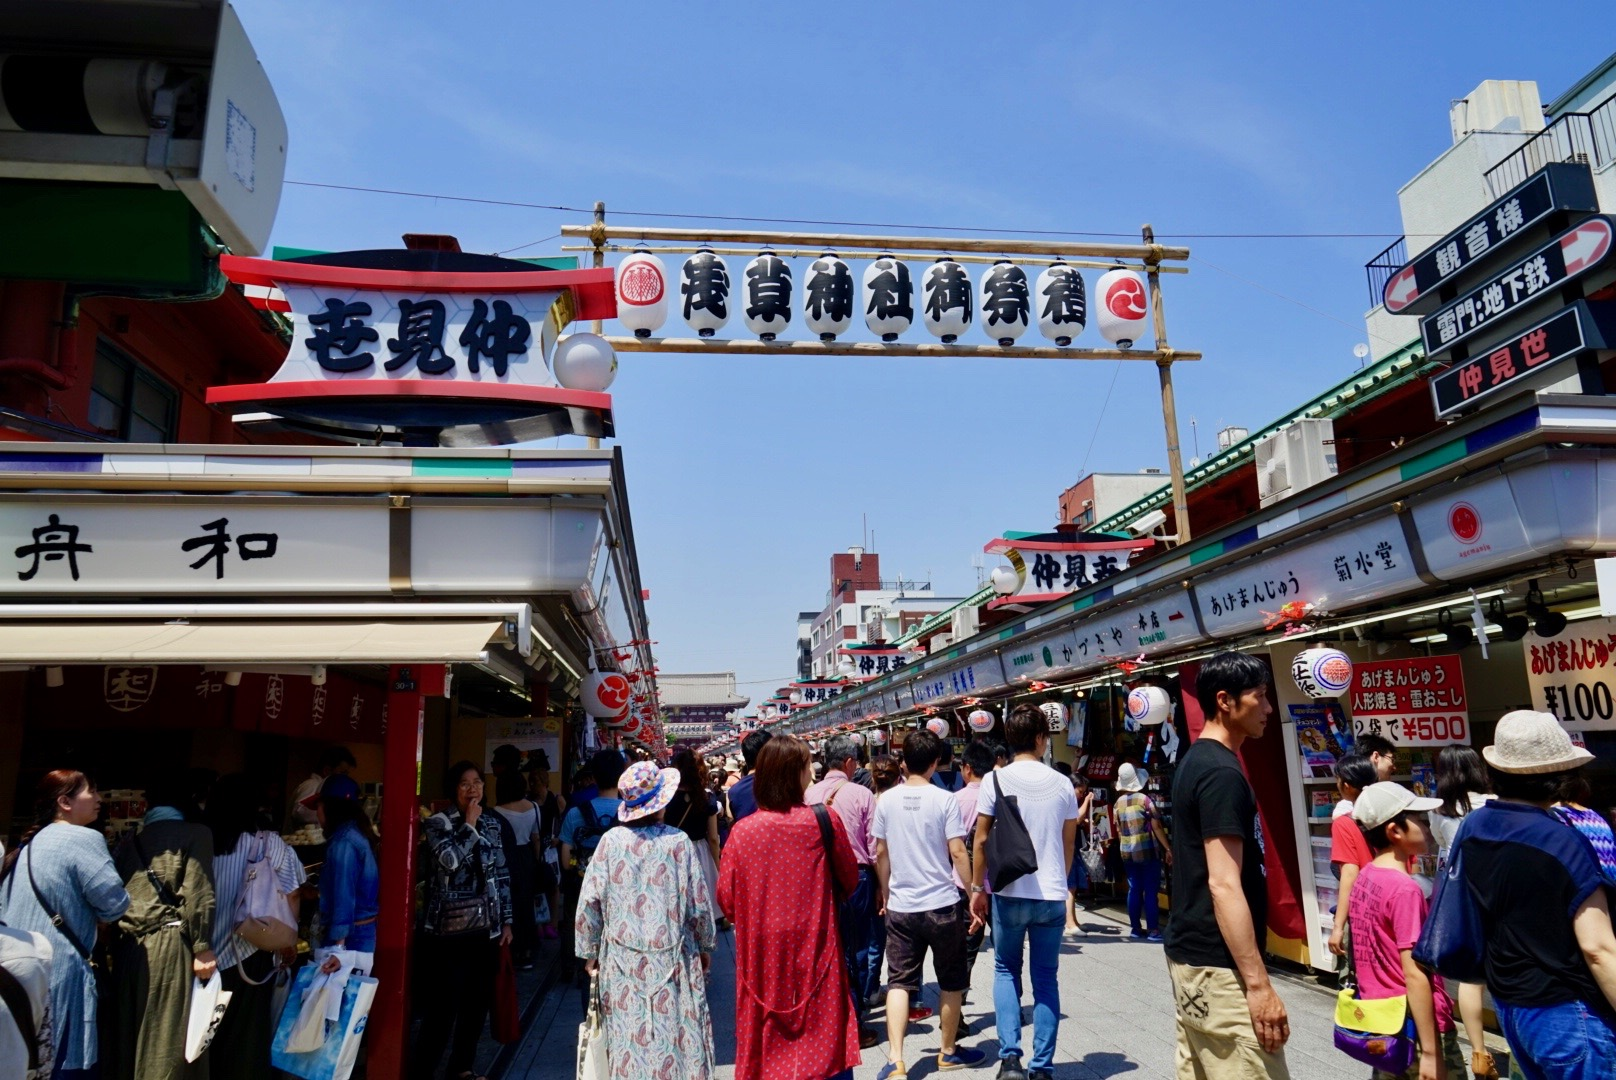 Asakusa  district for a walk among throngs of visitors, local snacks and souvenirs.